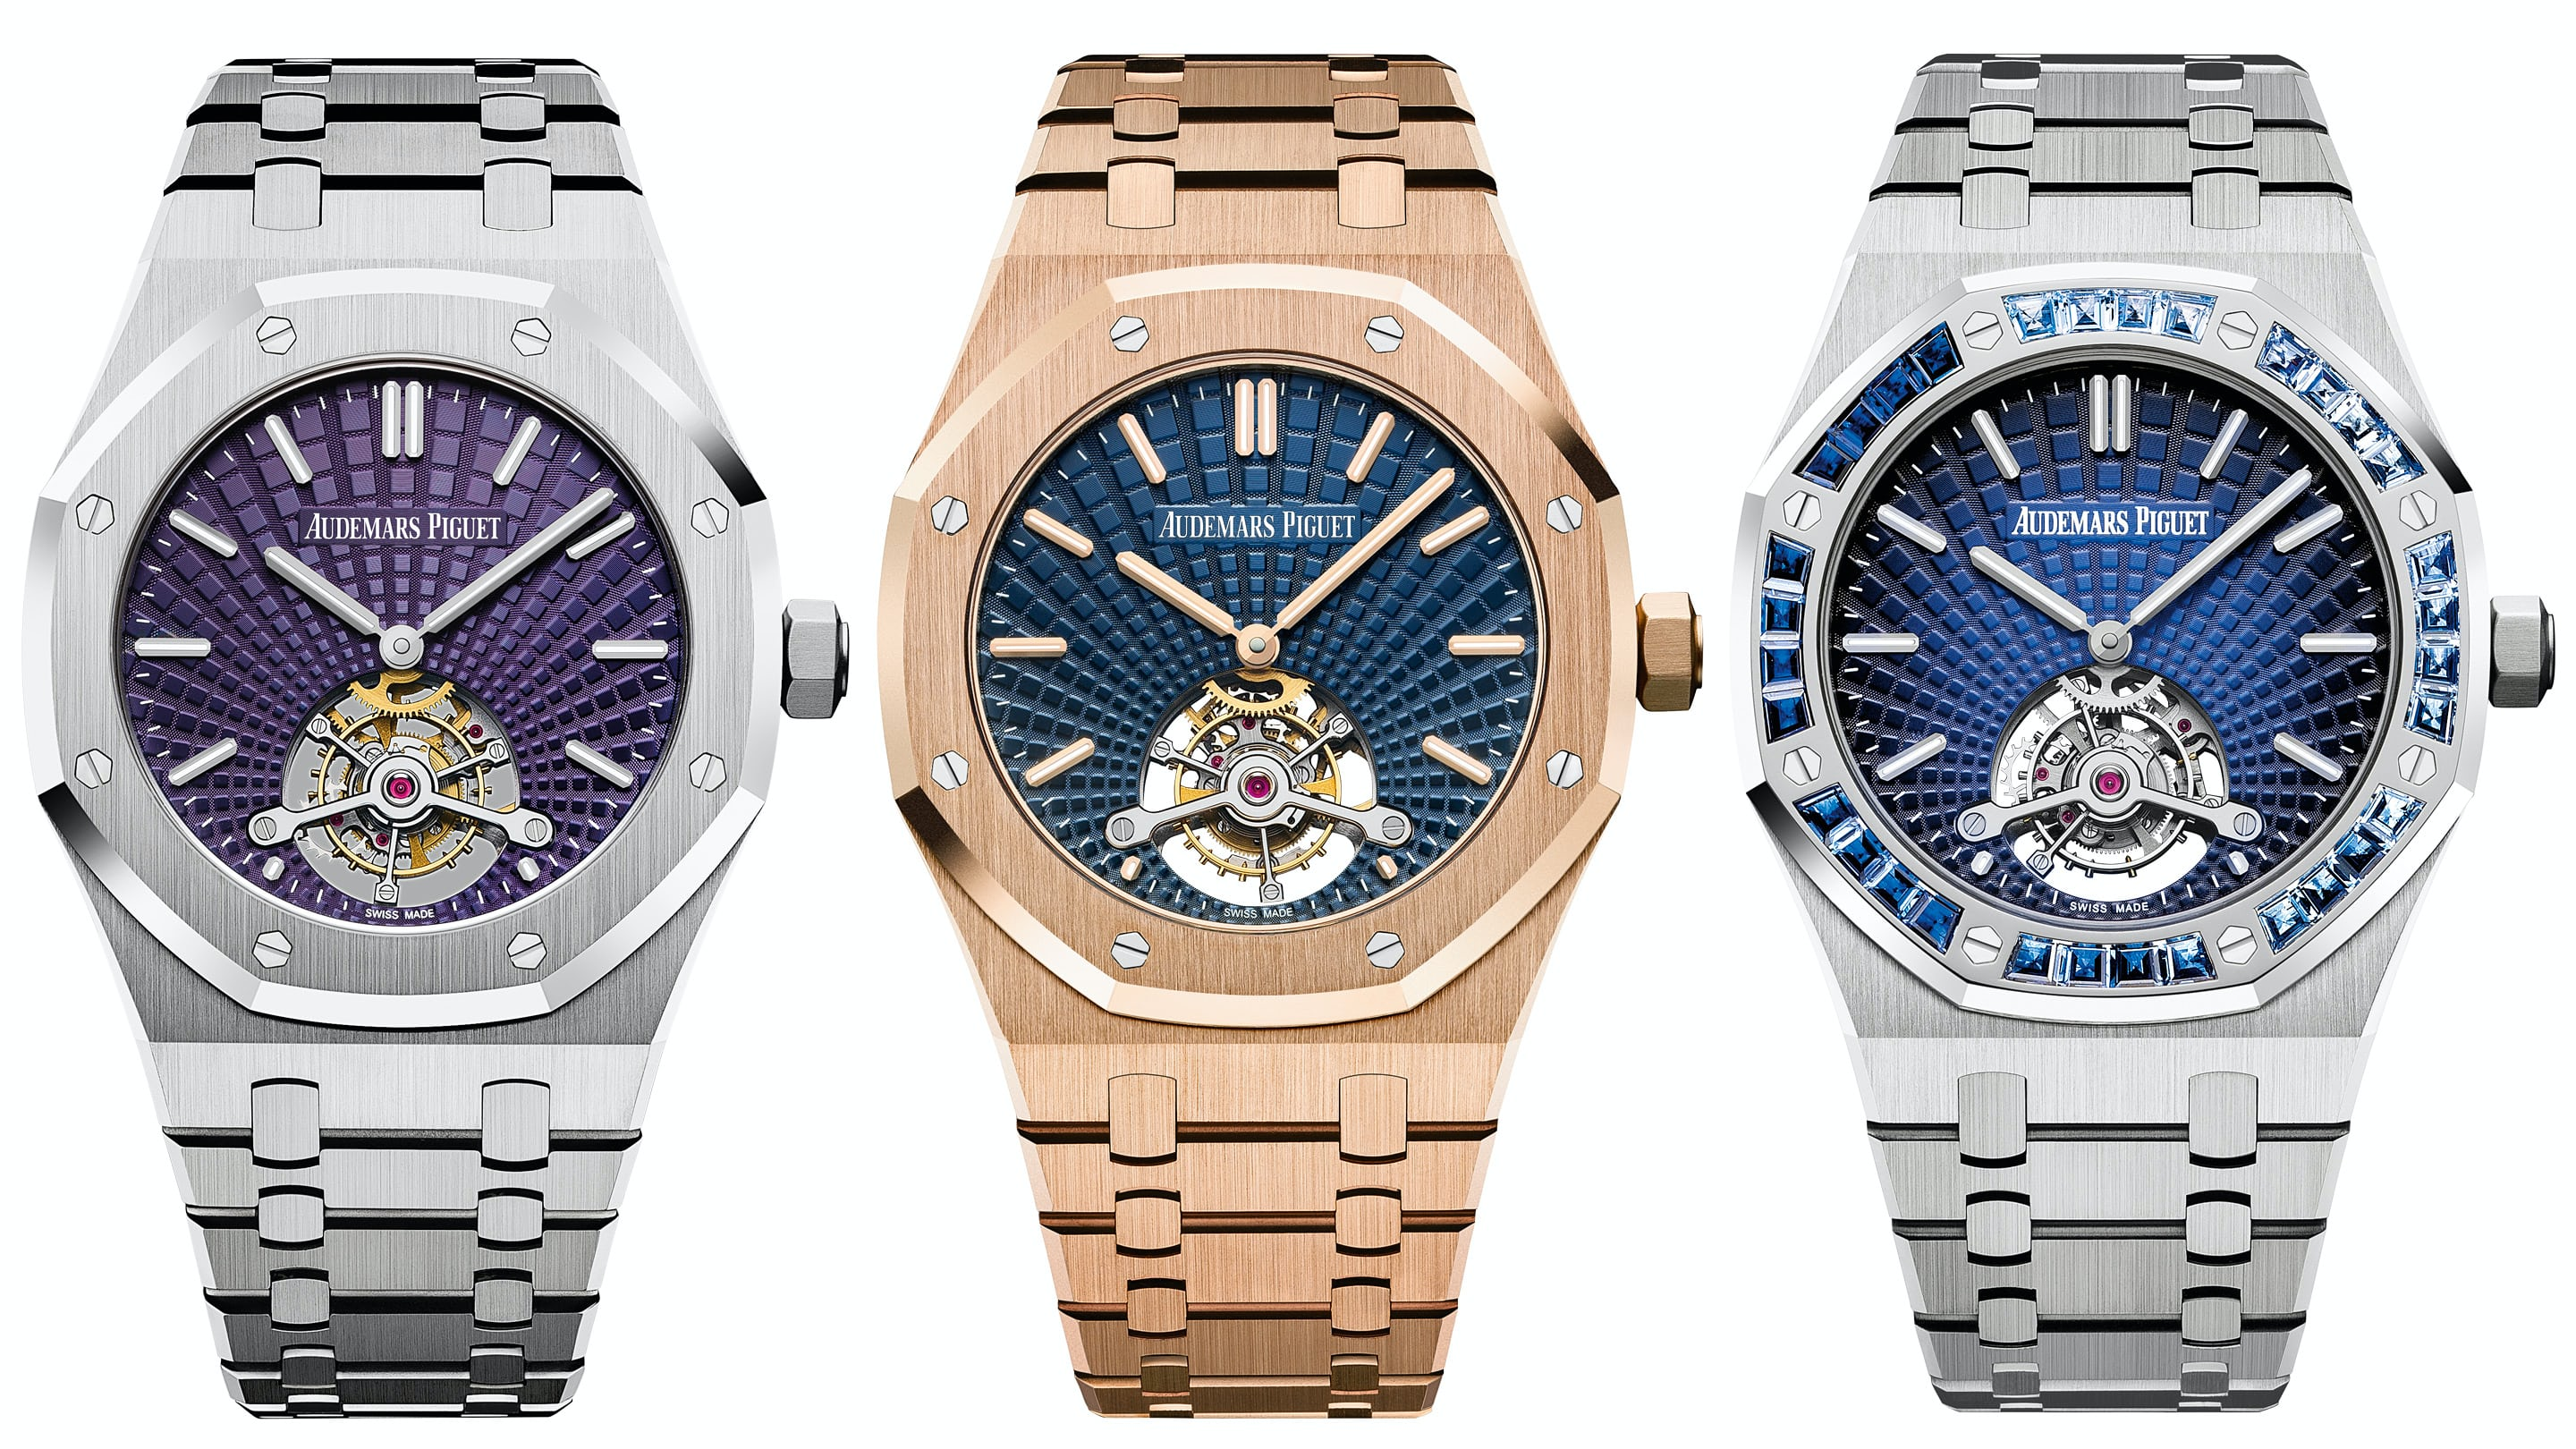 GIỚI THIỆU AUDEMARS PIGUET ROYAL OAK EXTRA-THIN TOURBILLON | LikeWatch.Com